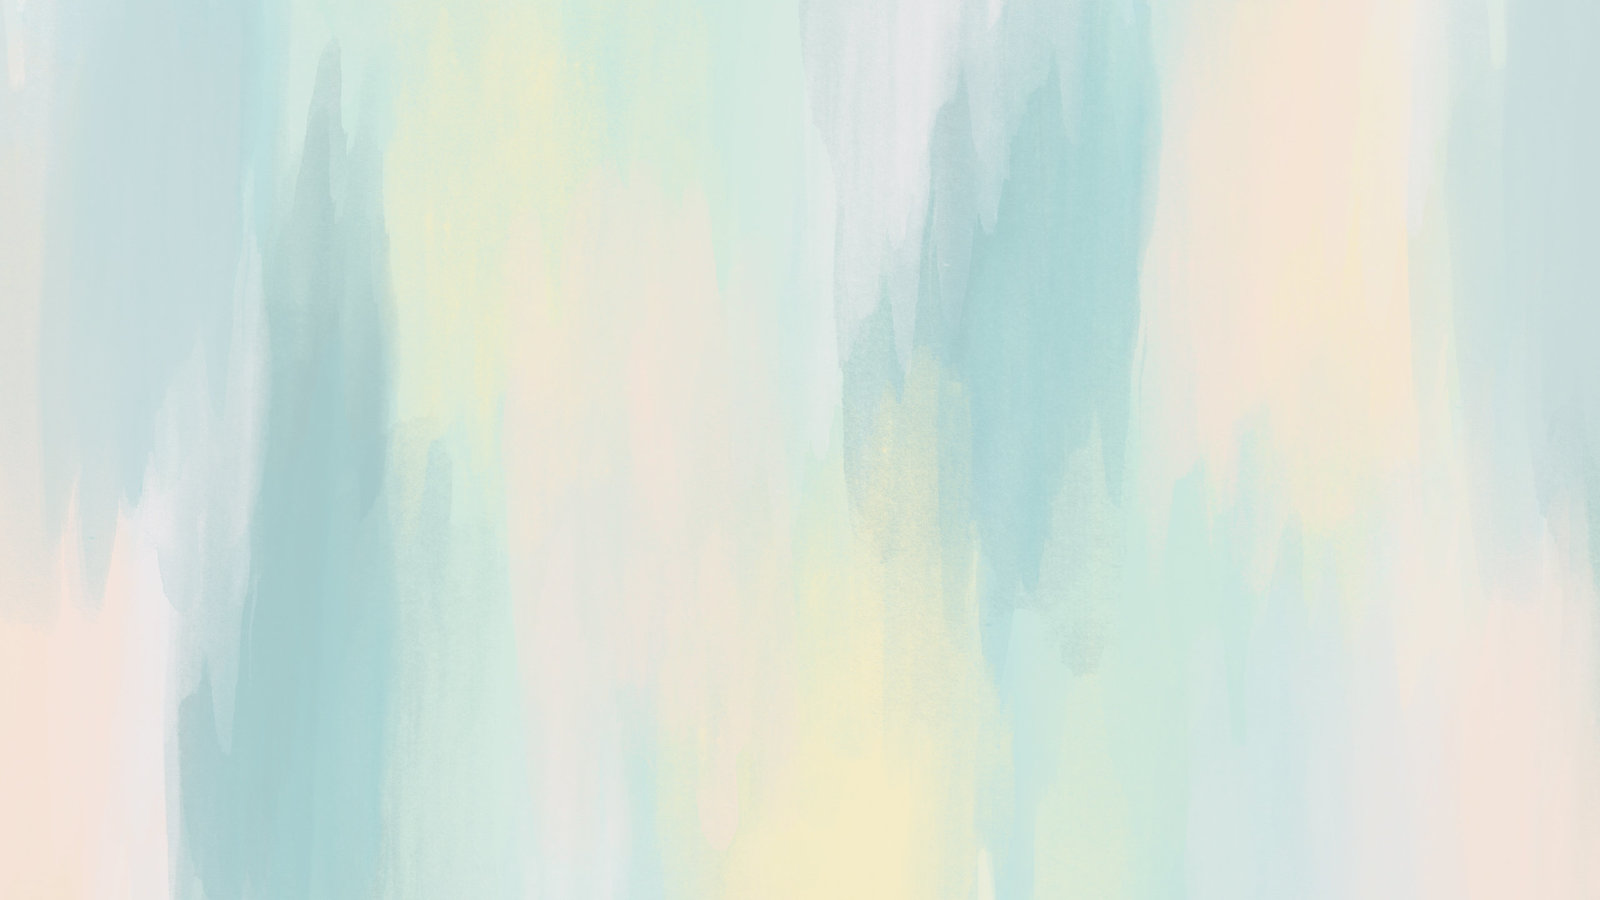 Watercolor+desktop+2560+x+1440